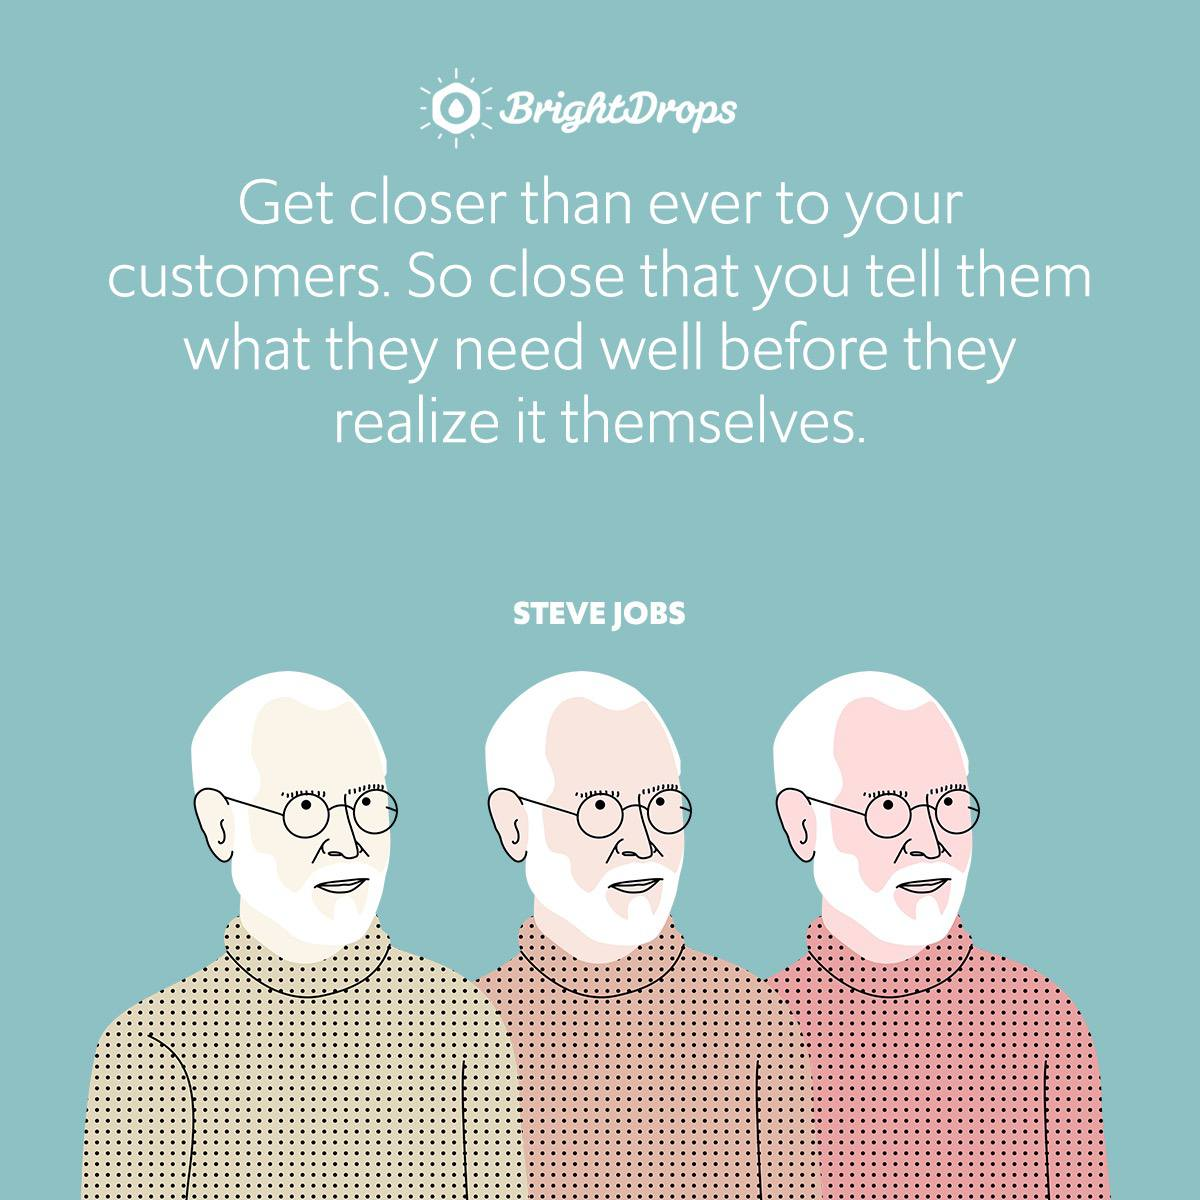 Get closer than ever to your customers. So close that you tell them what they need well before they realize it themselves.